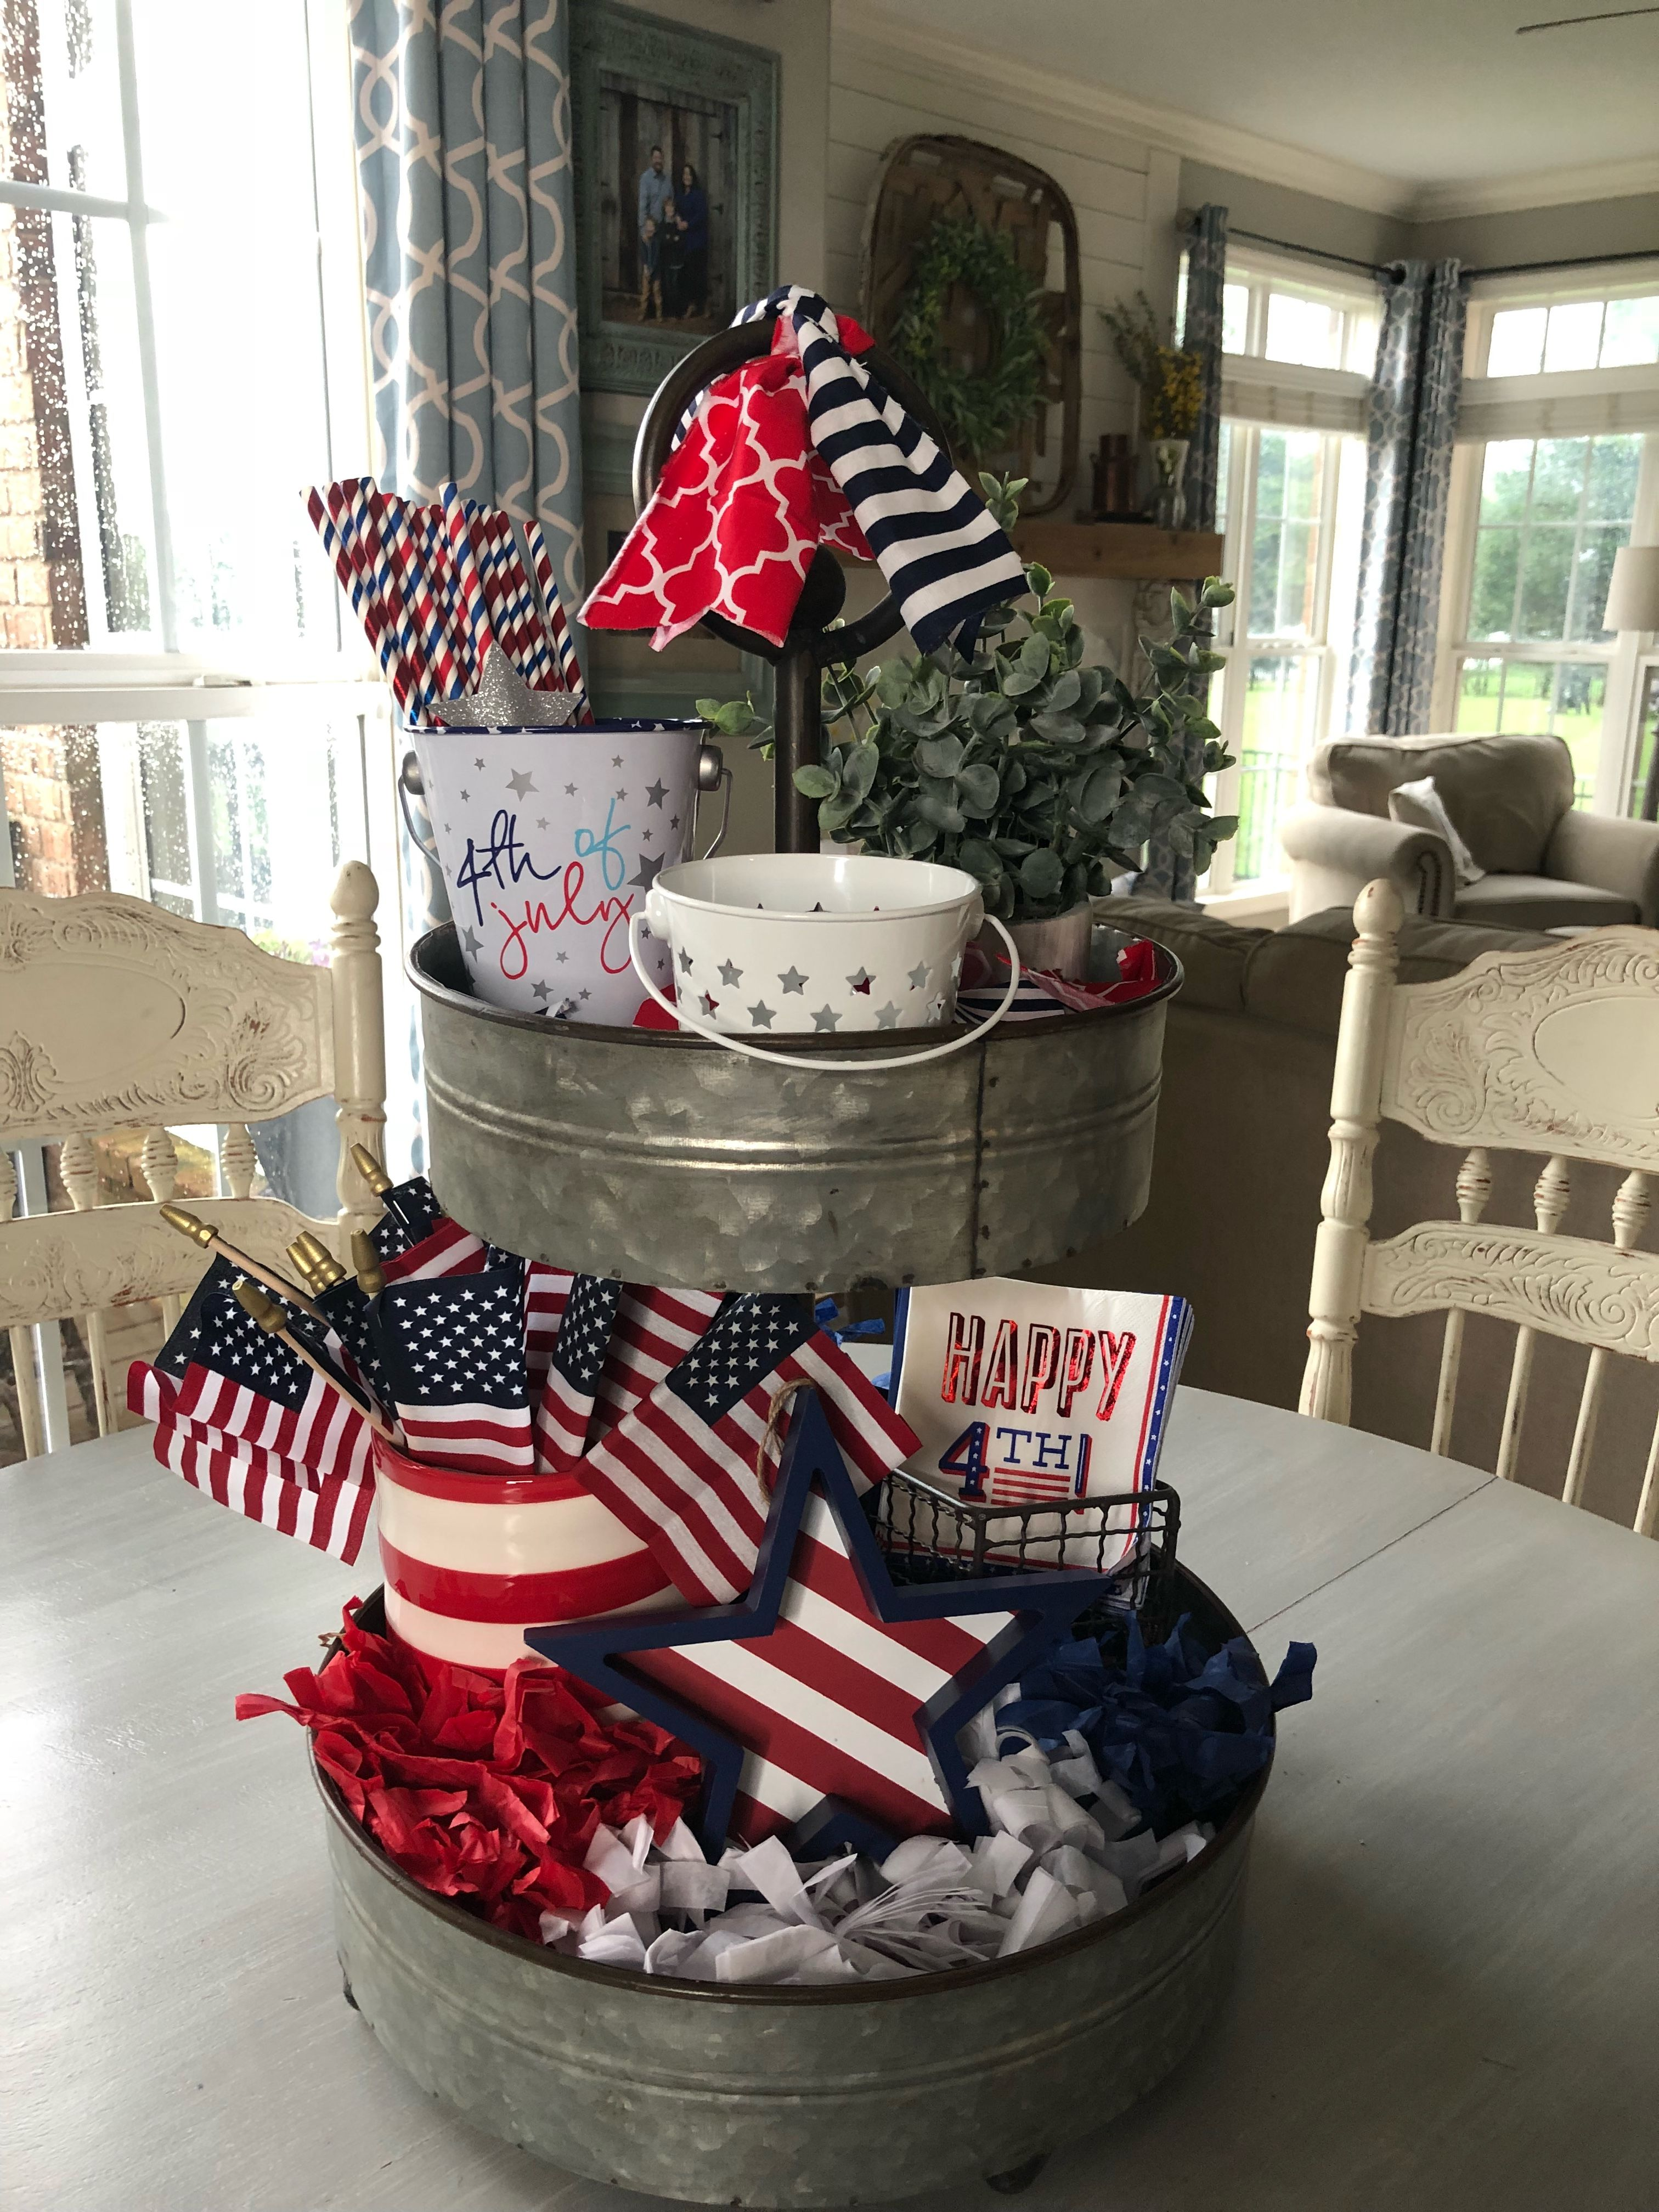 Target Dollar Spot Decor in my 4th of July Tiered Tray